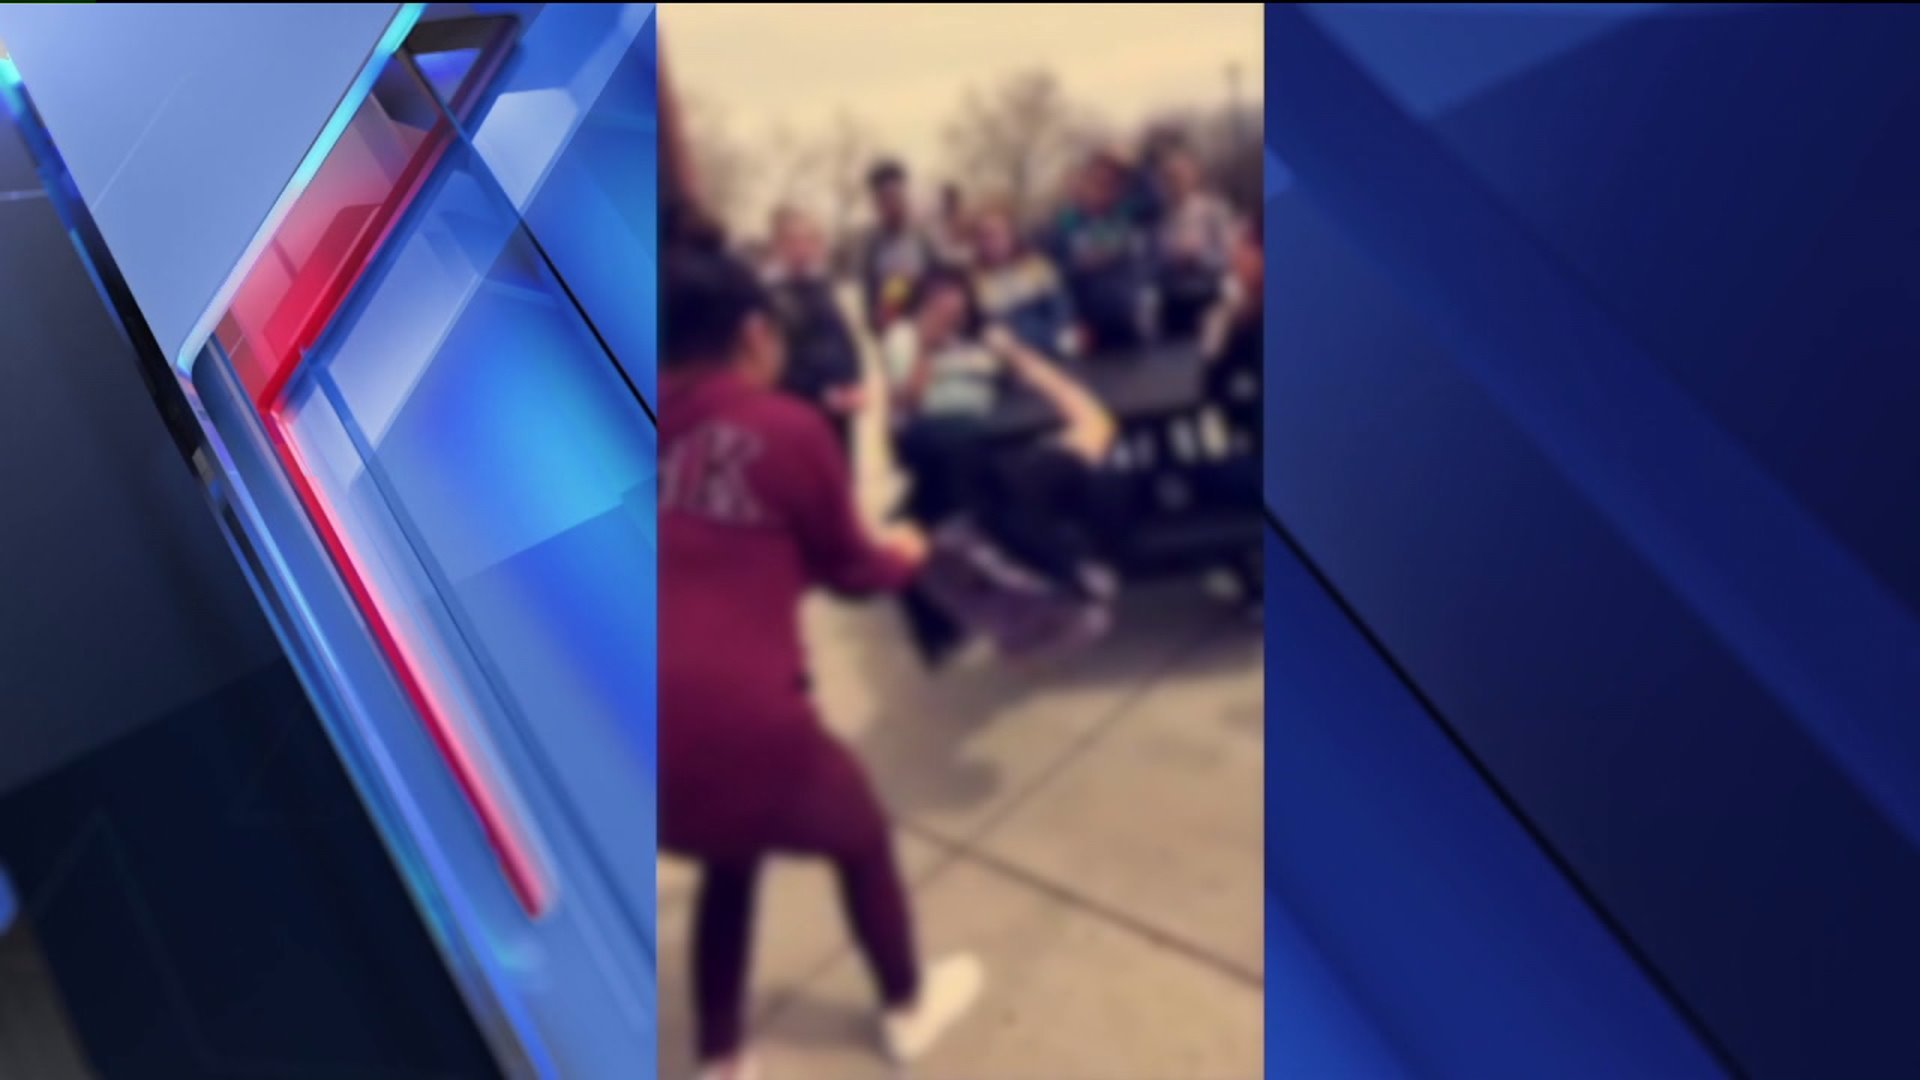 Parents concerned about reports of online 'fight clubs' promoting violence among students (CNN/KDVR)